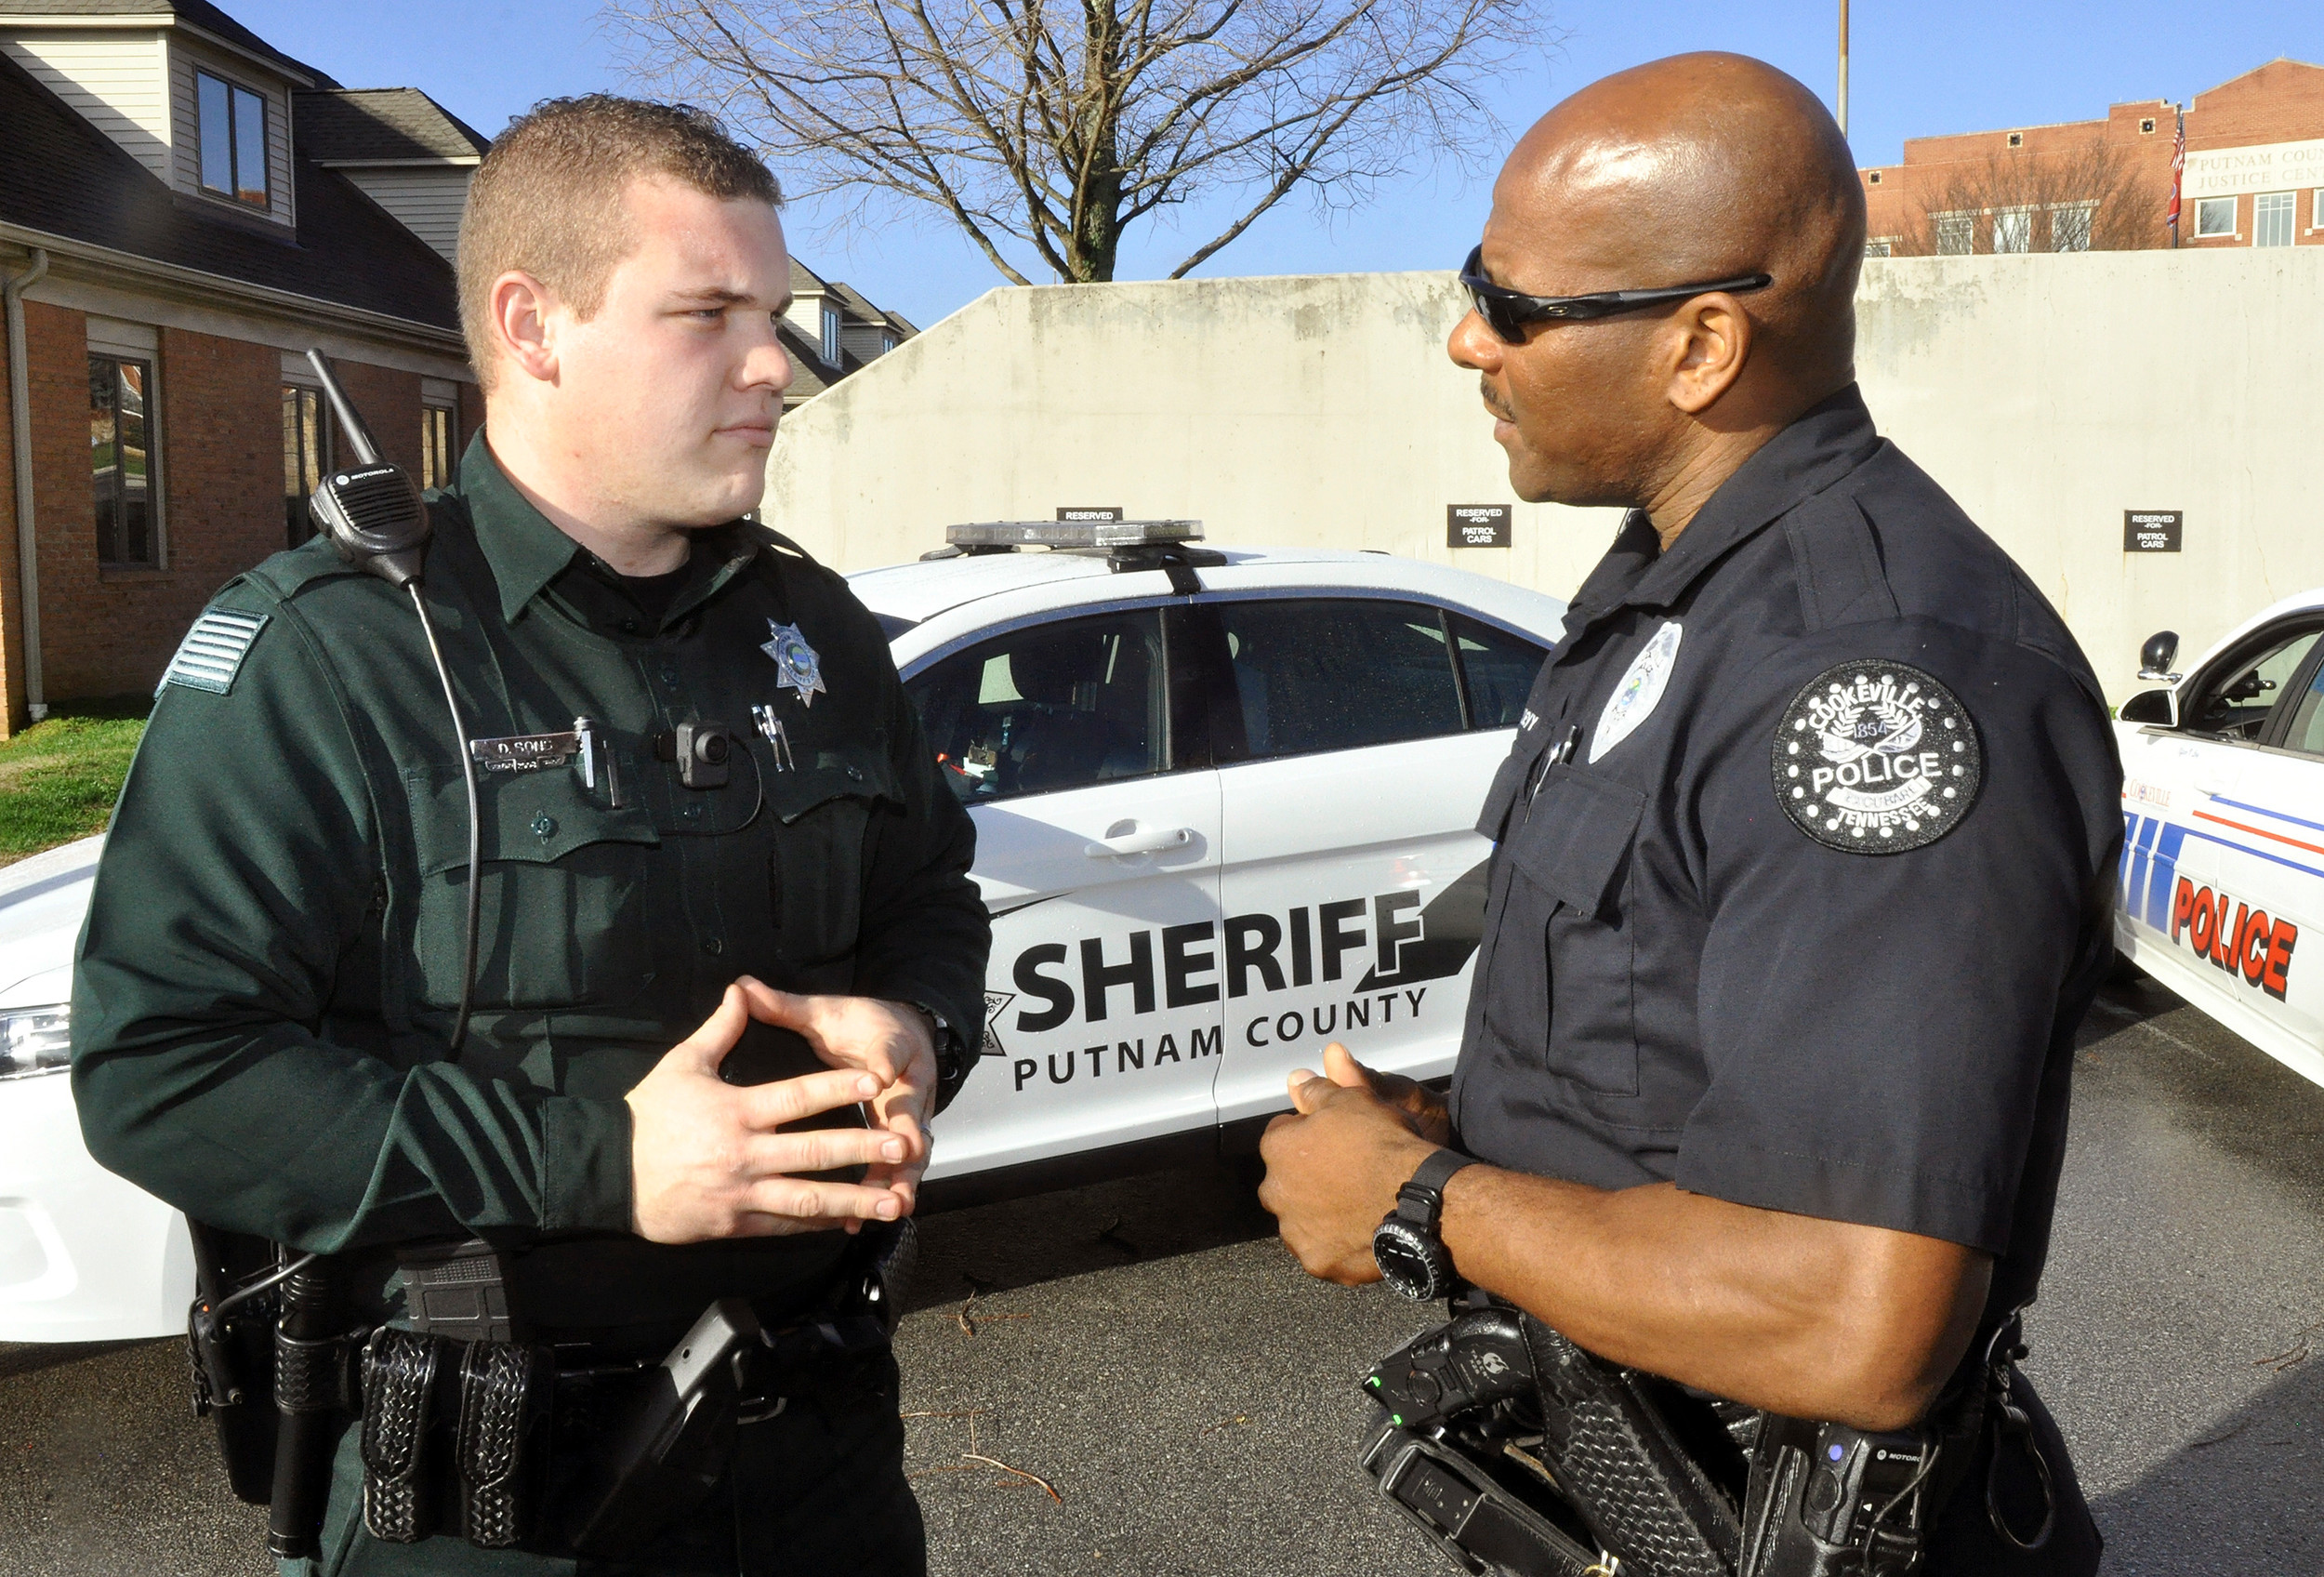 Law enforcement offering safe rides home on New Year's Eve